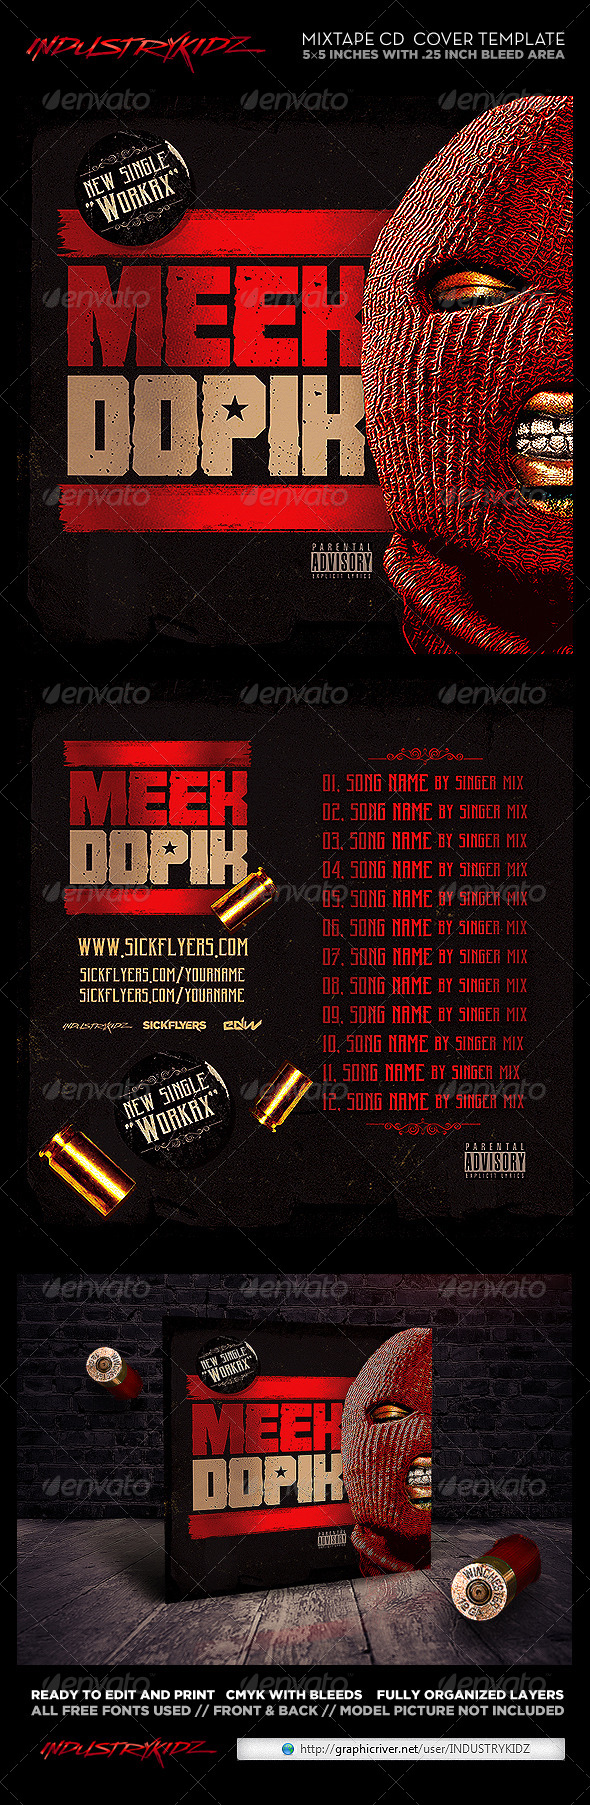 Mixtape Cover Template PSD Hip Hop - CD & DVD Artwork Print Templates